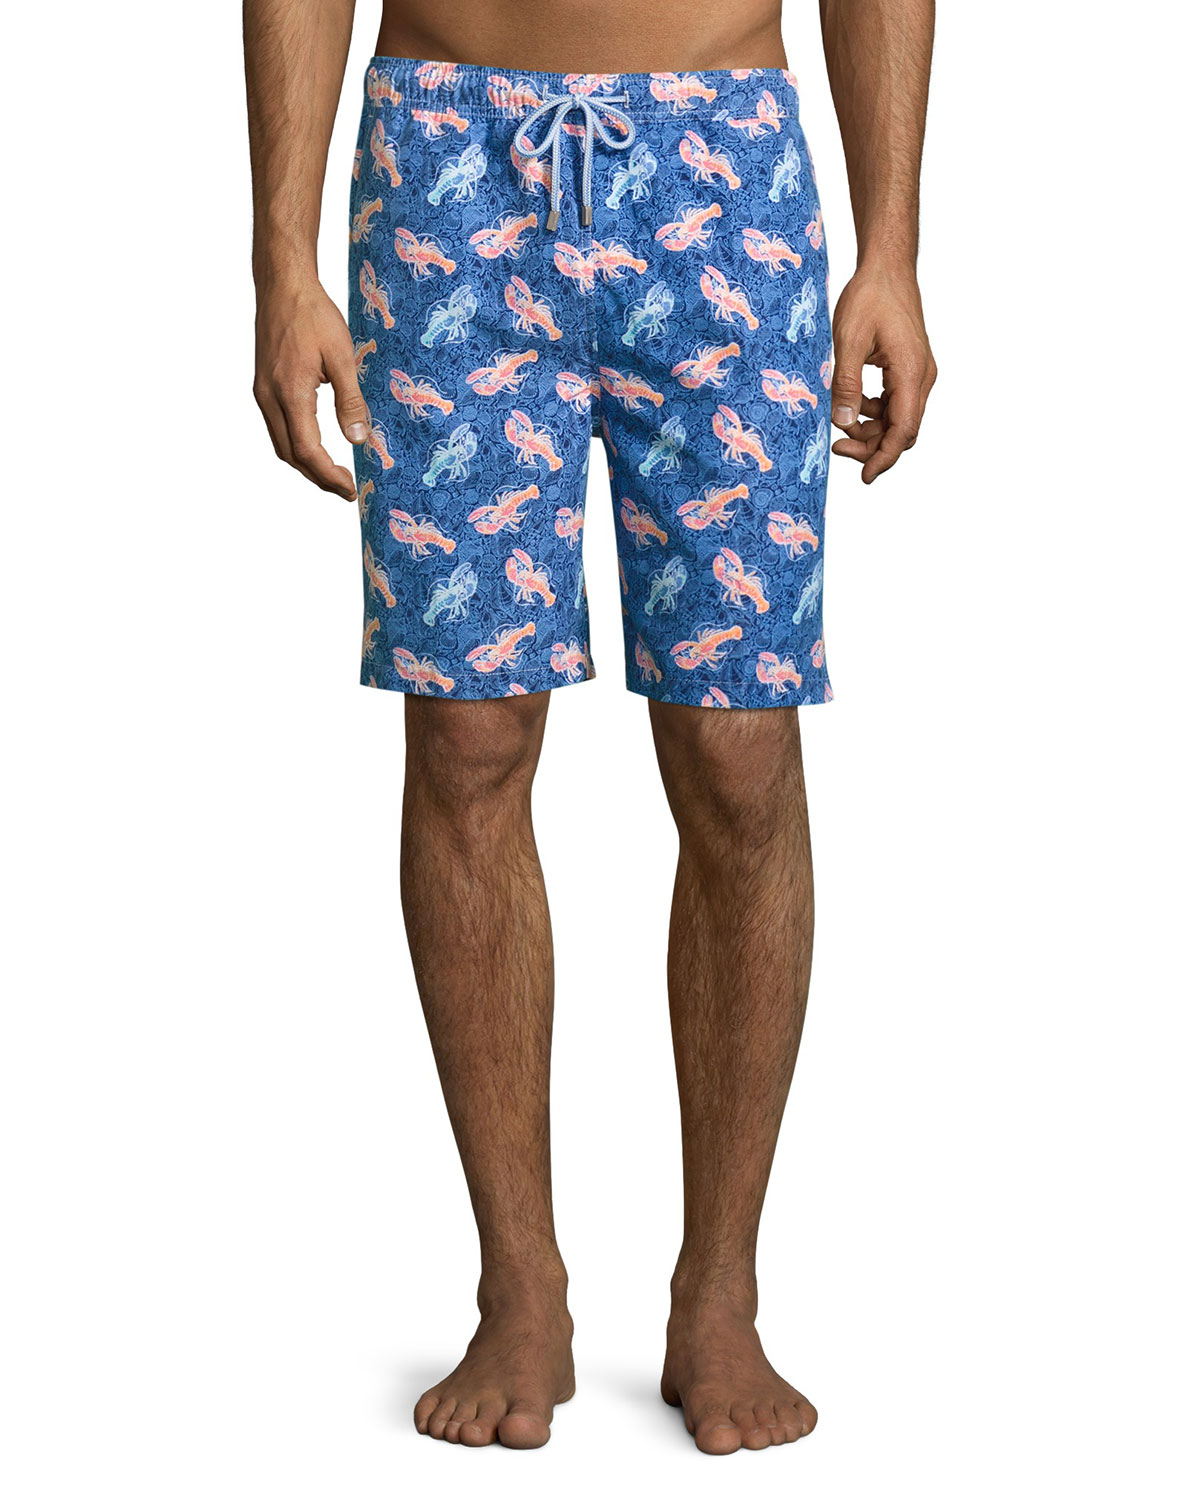 57202f9c05 Peter Millar Lobster & Seashell Swim Trunks, Dark Blue | Neiman Marcus